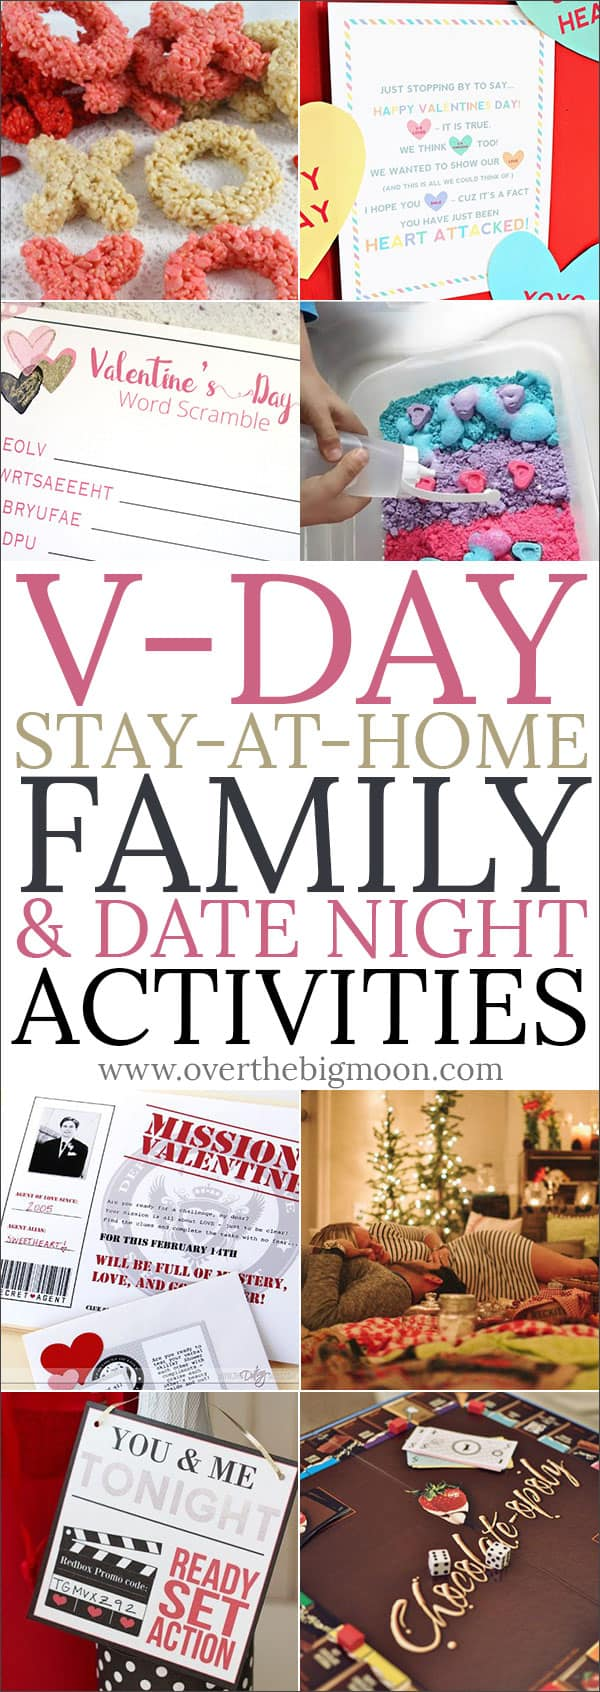 Valentine's Day Stay at Home Family & Date Night Activities from overthebigmoon.com!